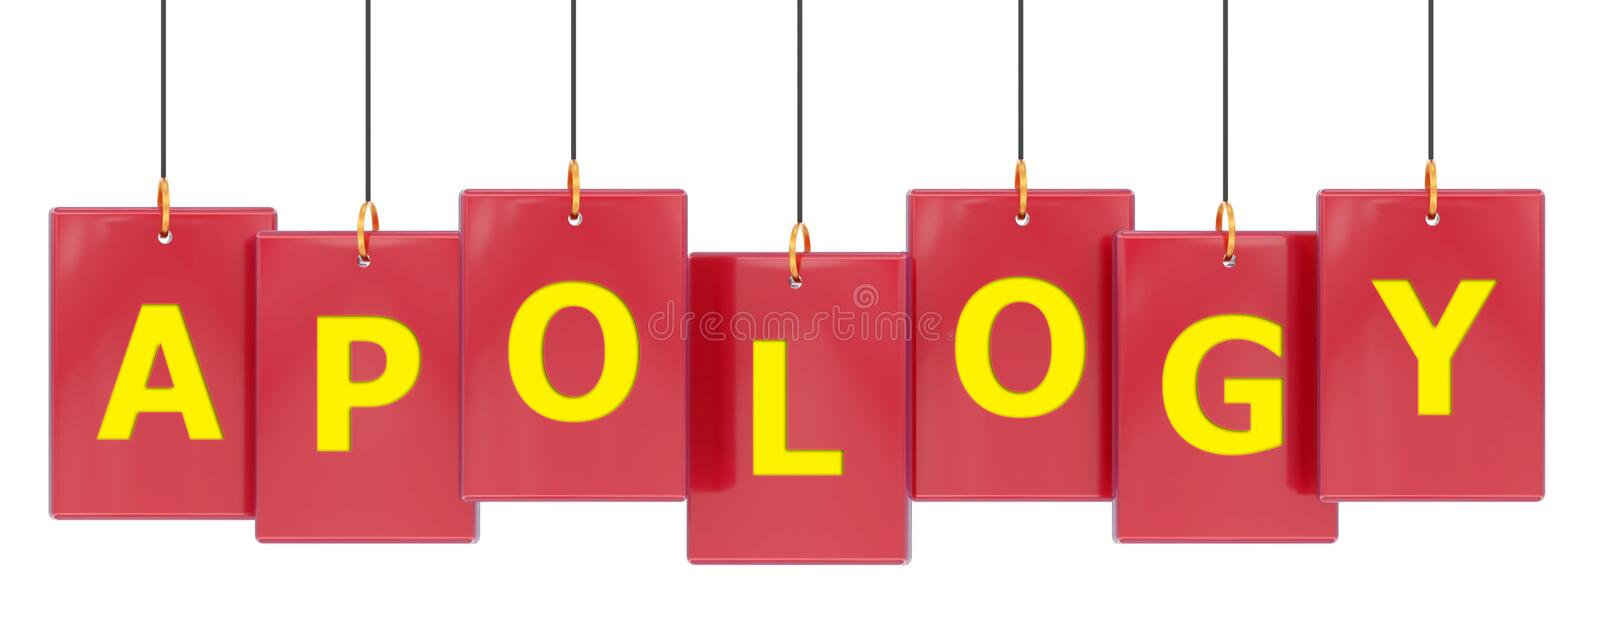 Apology tag banner. Apology 3d rendered tag banner , isolated on white background royalty free illustration